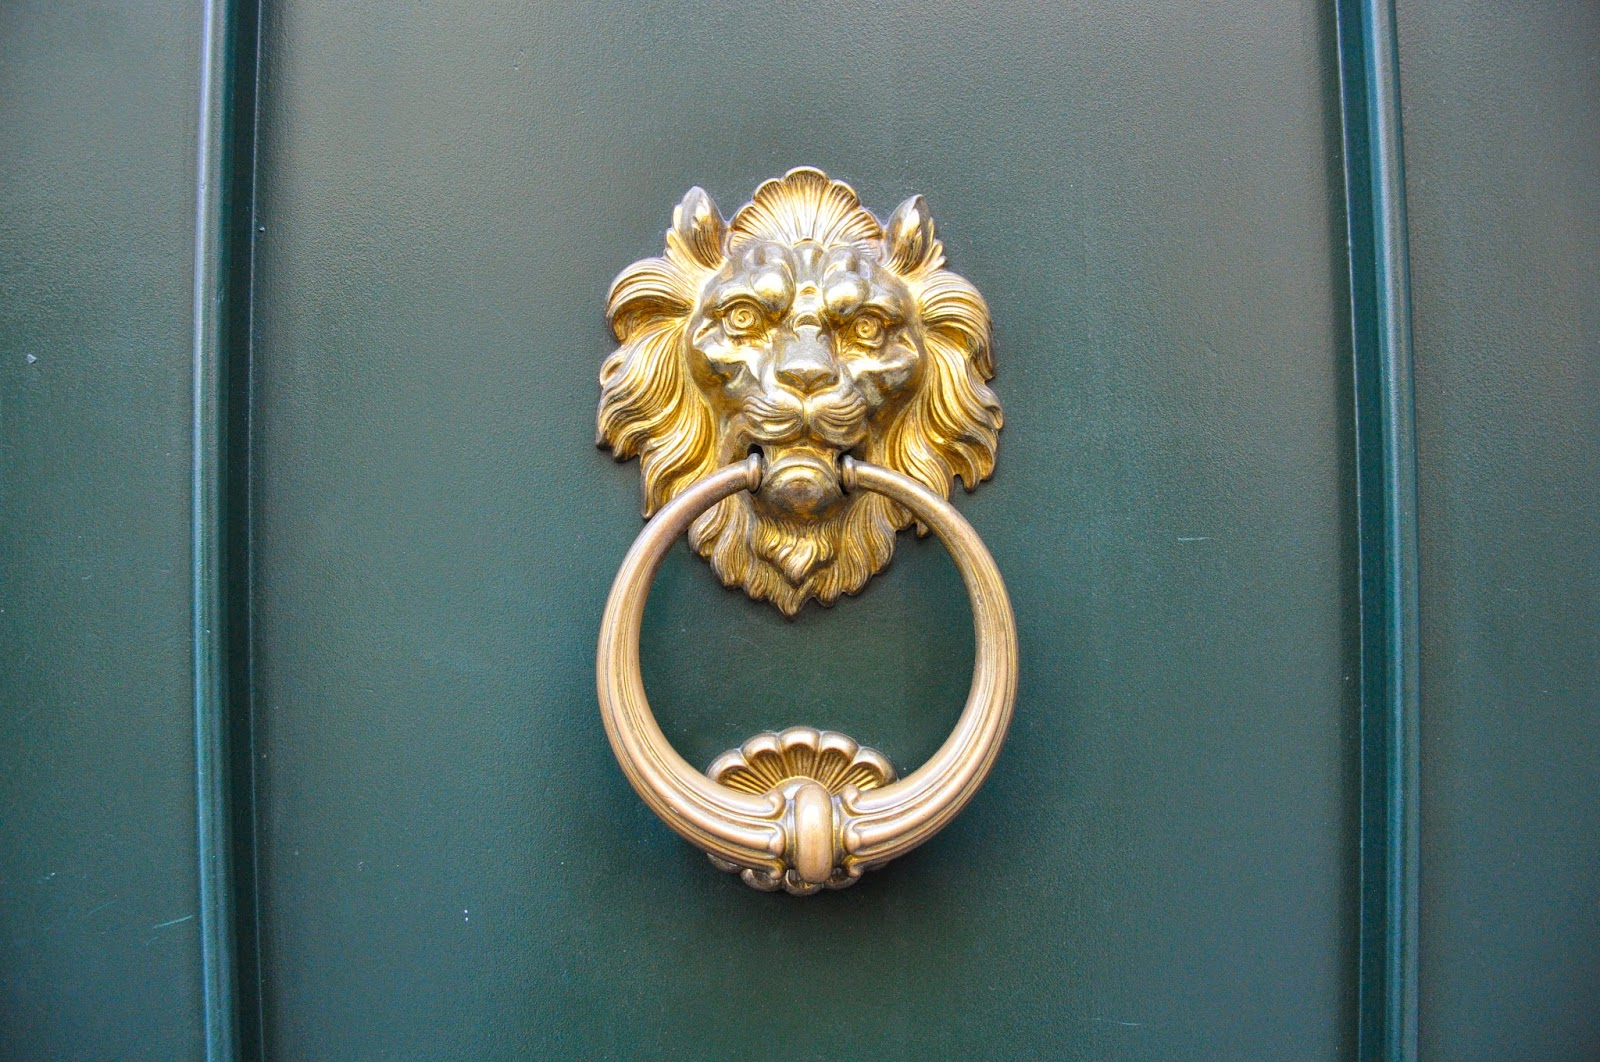 A lion's head door knocker seen  in Padova, Italy